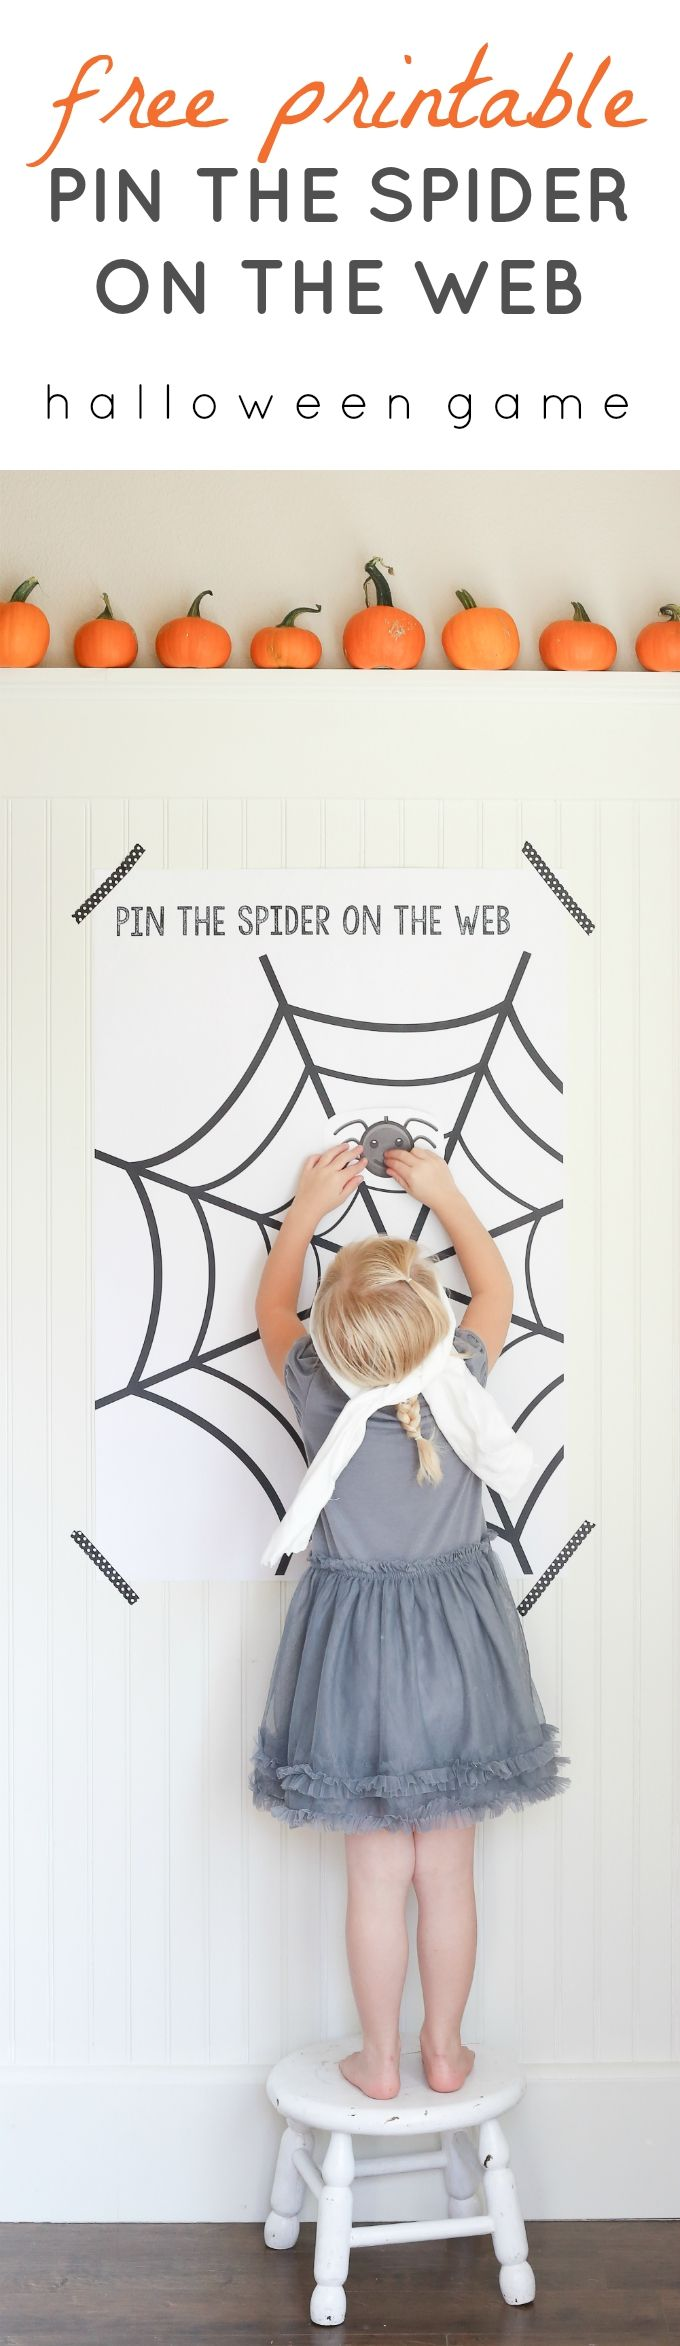 Free printable pin the spider on the web game a halloween twist to